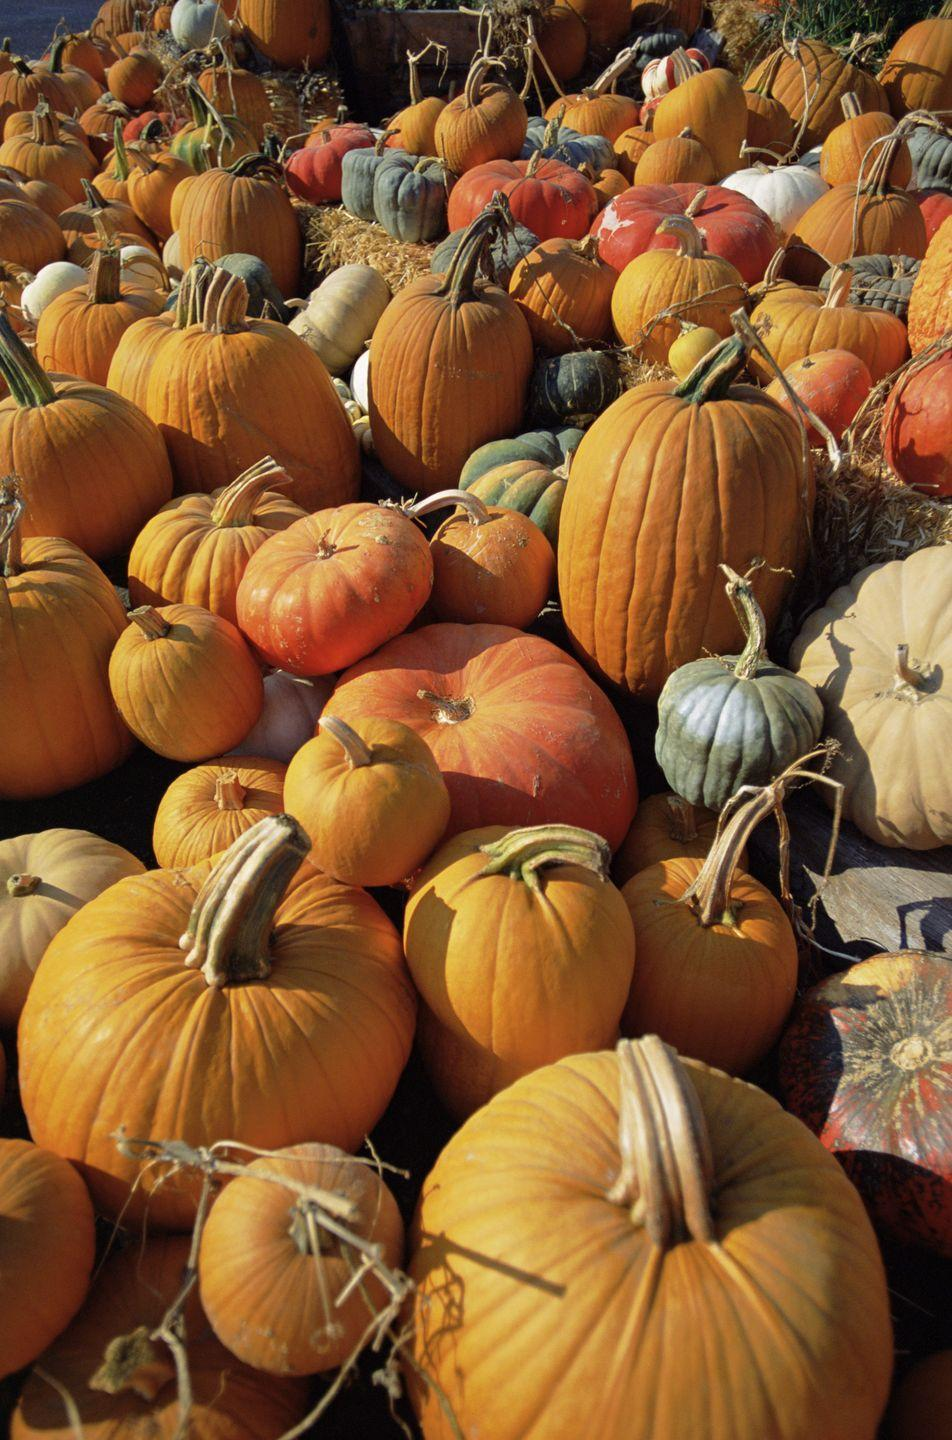 """<p><strong>Orem, Utah <strong>(Sept 10-Oct 30)</strong><br></strong></p><p>It's all about pumpkins at <a href=""""https://wilkersonfarm.com/fall-fair"""" rel=""""nofollow noopener"""" target=""""_blank"""" data-ylk=""""slk:Wilkerson Farm"""" class=""""link rapid-noclick-resp""""><strong>Wilkerson Farm</strong></a>. General admission to the Fall Festival is $12.50 per person with free admission for children ages 4 and under. Get a season pass for $38 and celebrate throughout the week (Mon-Sat). All attractions and rides such as Milly's Mini Maze and Wilkerson's Windmill are included with admission for you and your loved ones! Admission is not required for the pumpkin patch, so feel free to find your perfect pick this season. </p><p><em>*This photo is not from Pack Farms.</em></p>"""